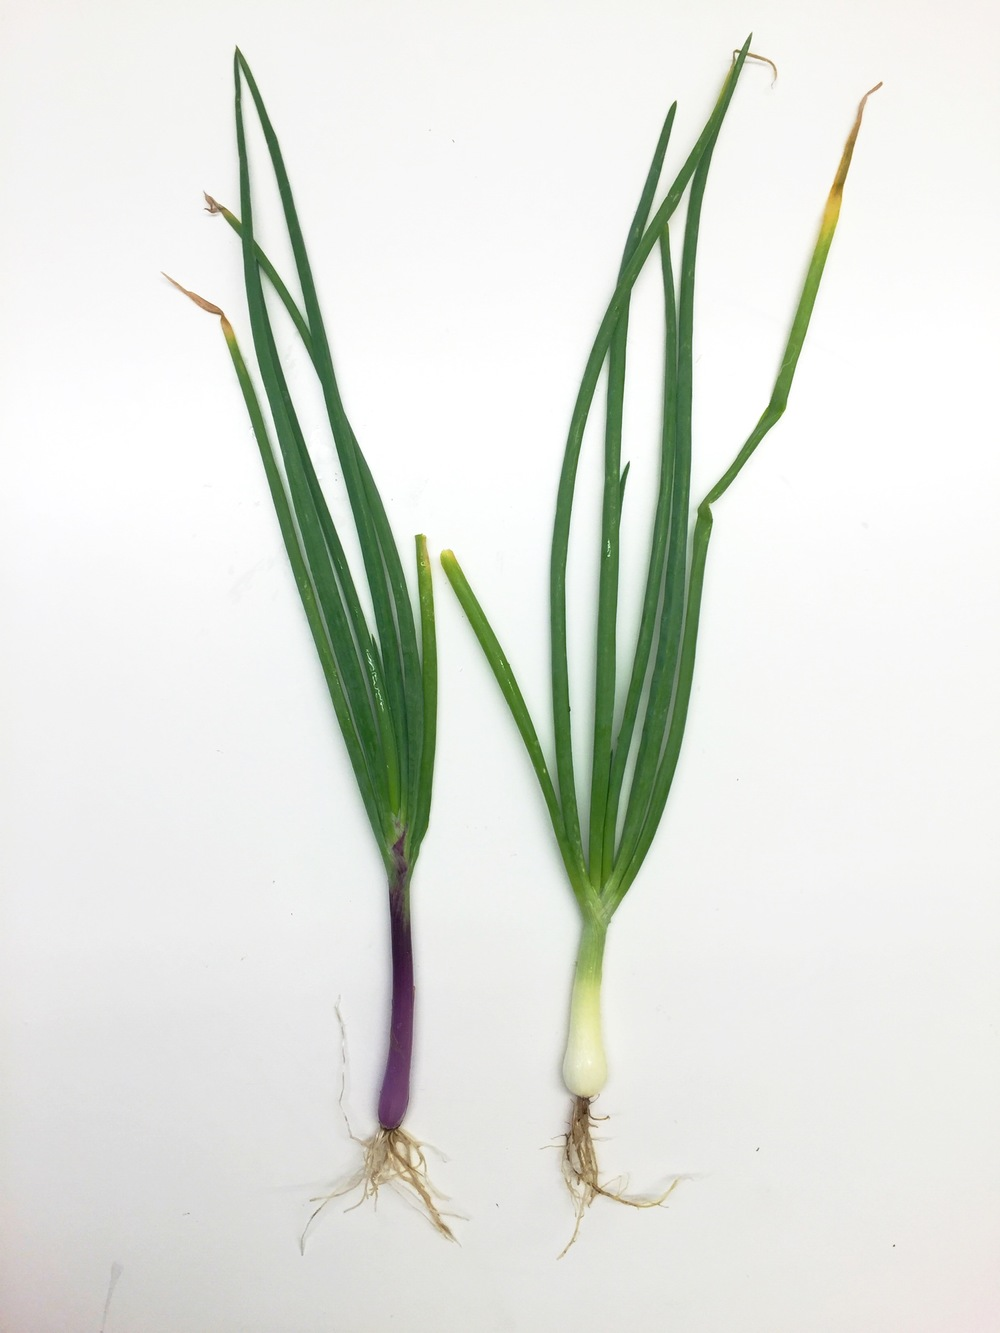 JAPANESE BUNCHING ONIONS